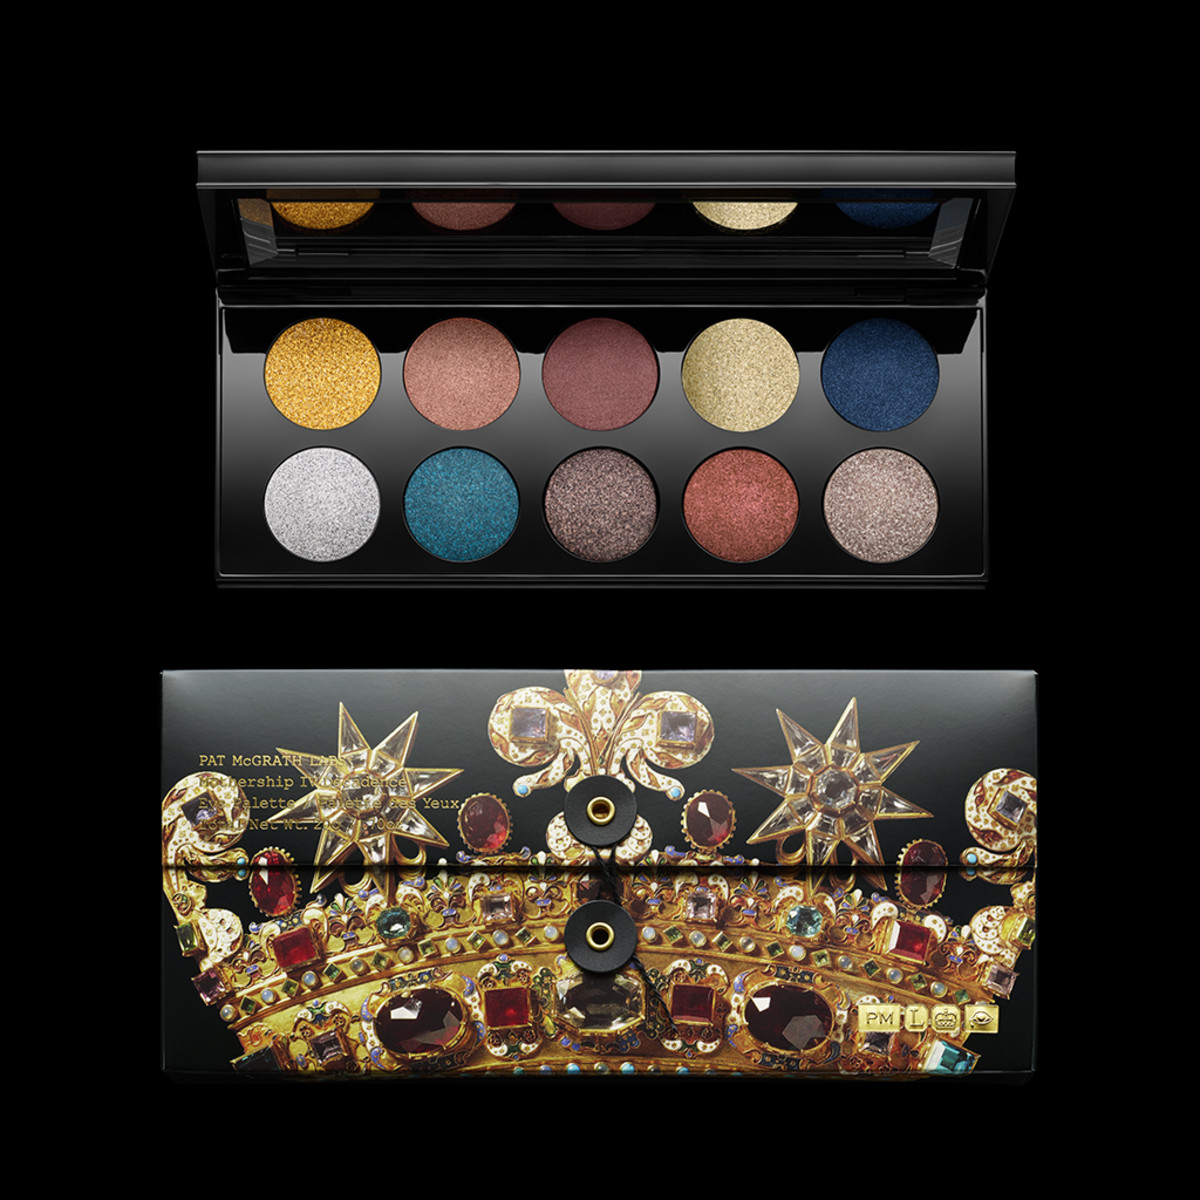 The Pat McGrath Labs Mothership IV: Decadence Eye Palette. Photo: Courtesy of Pat McGrath Labs